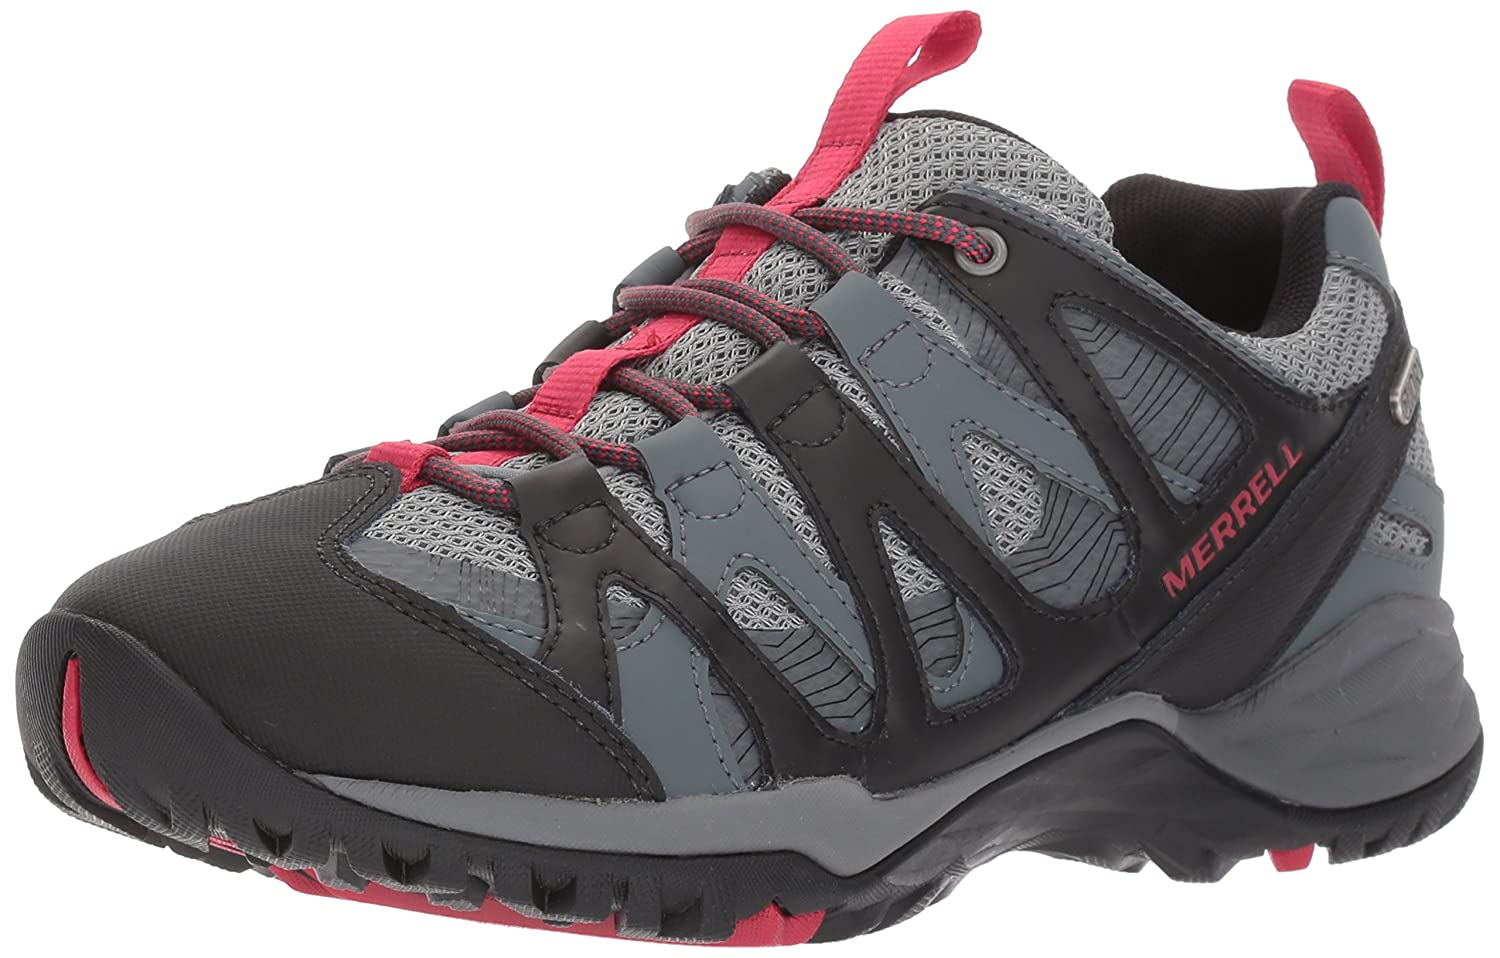 Merrell Women's Siren Hex Waterproof Hiking Shoe B01MYBBFY1 8 B(M) US|Turbulence